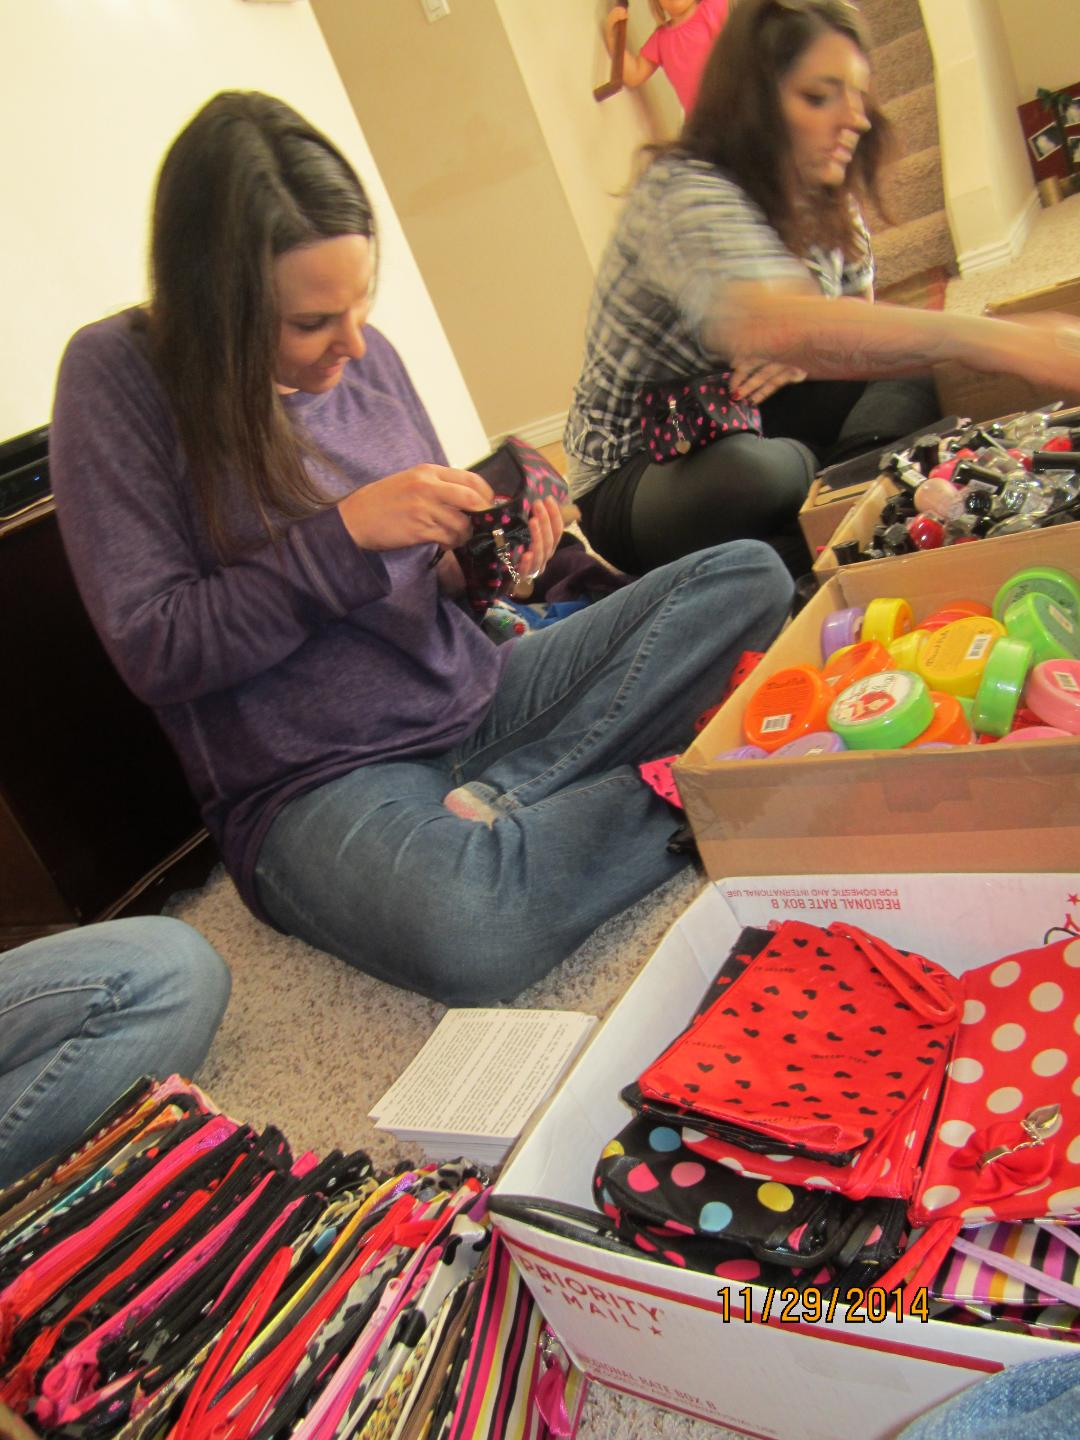 2014 Makeup bags for homeless women